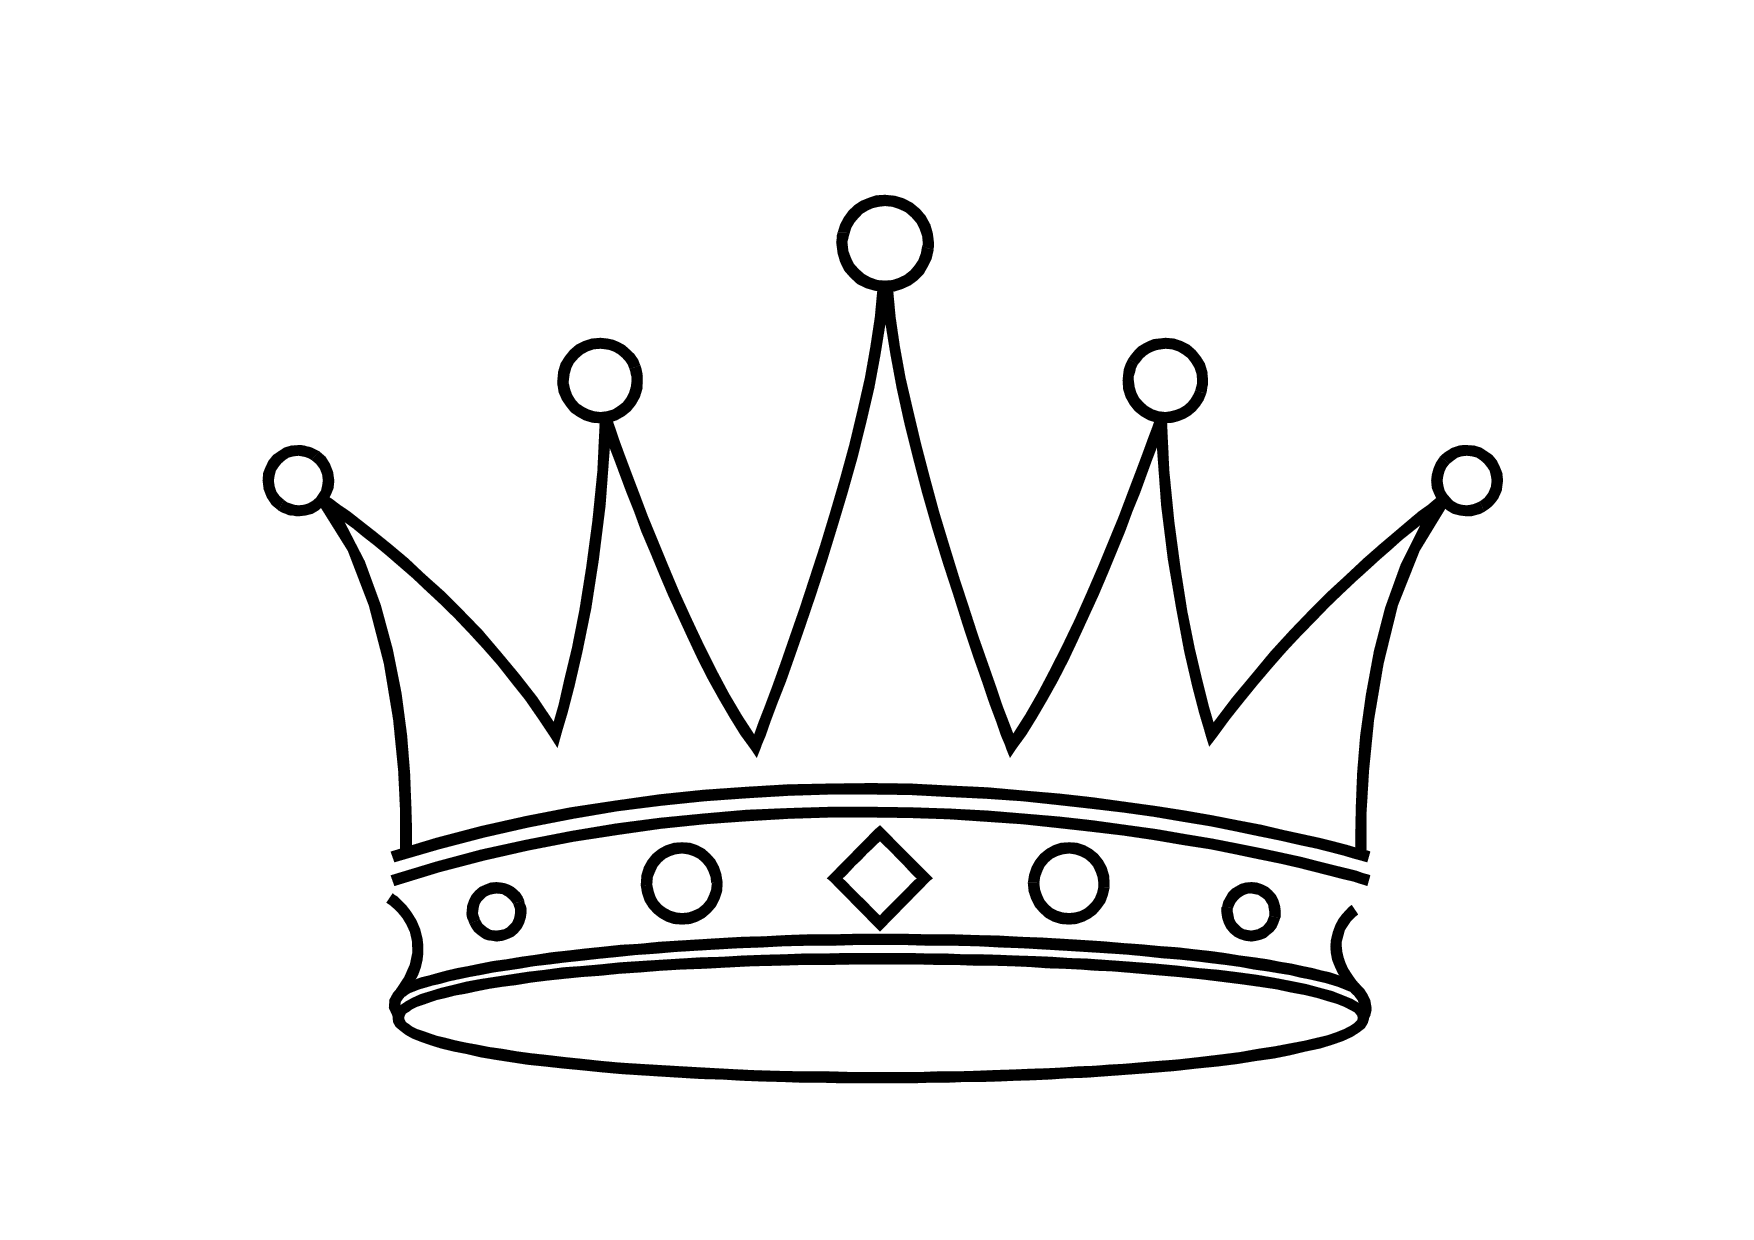 Nice A Drawing Of A Crown For A King | Coloring pages | Pinterest ...